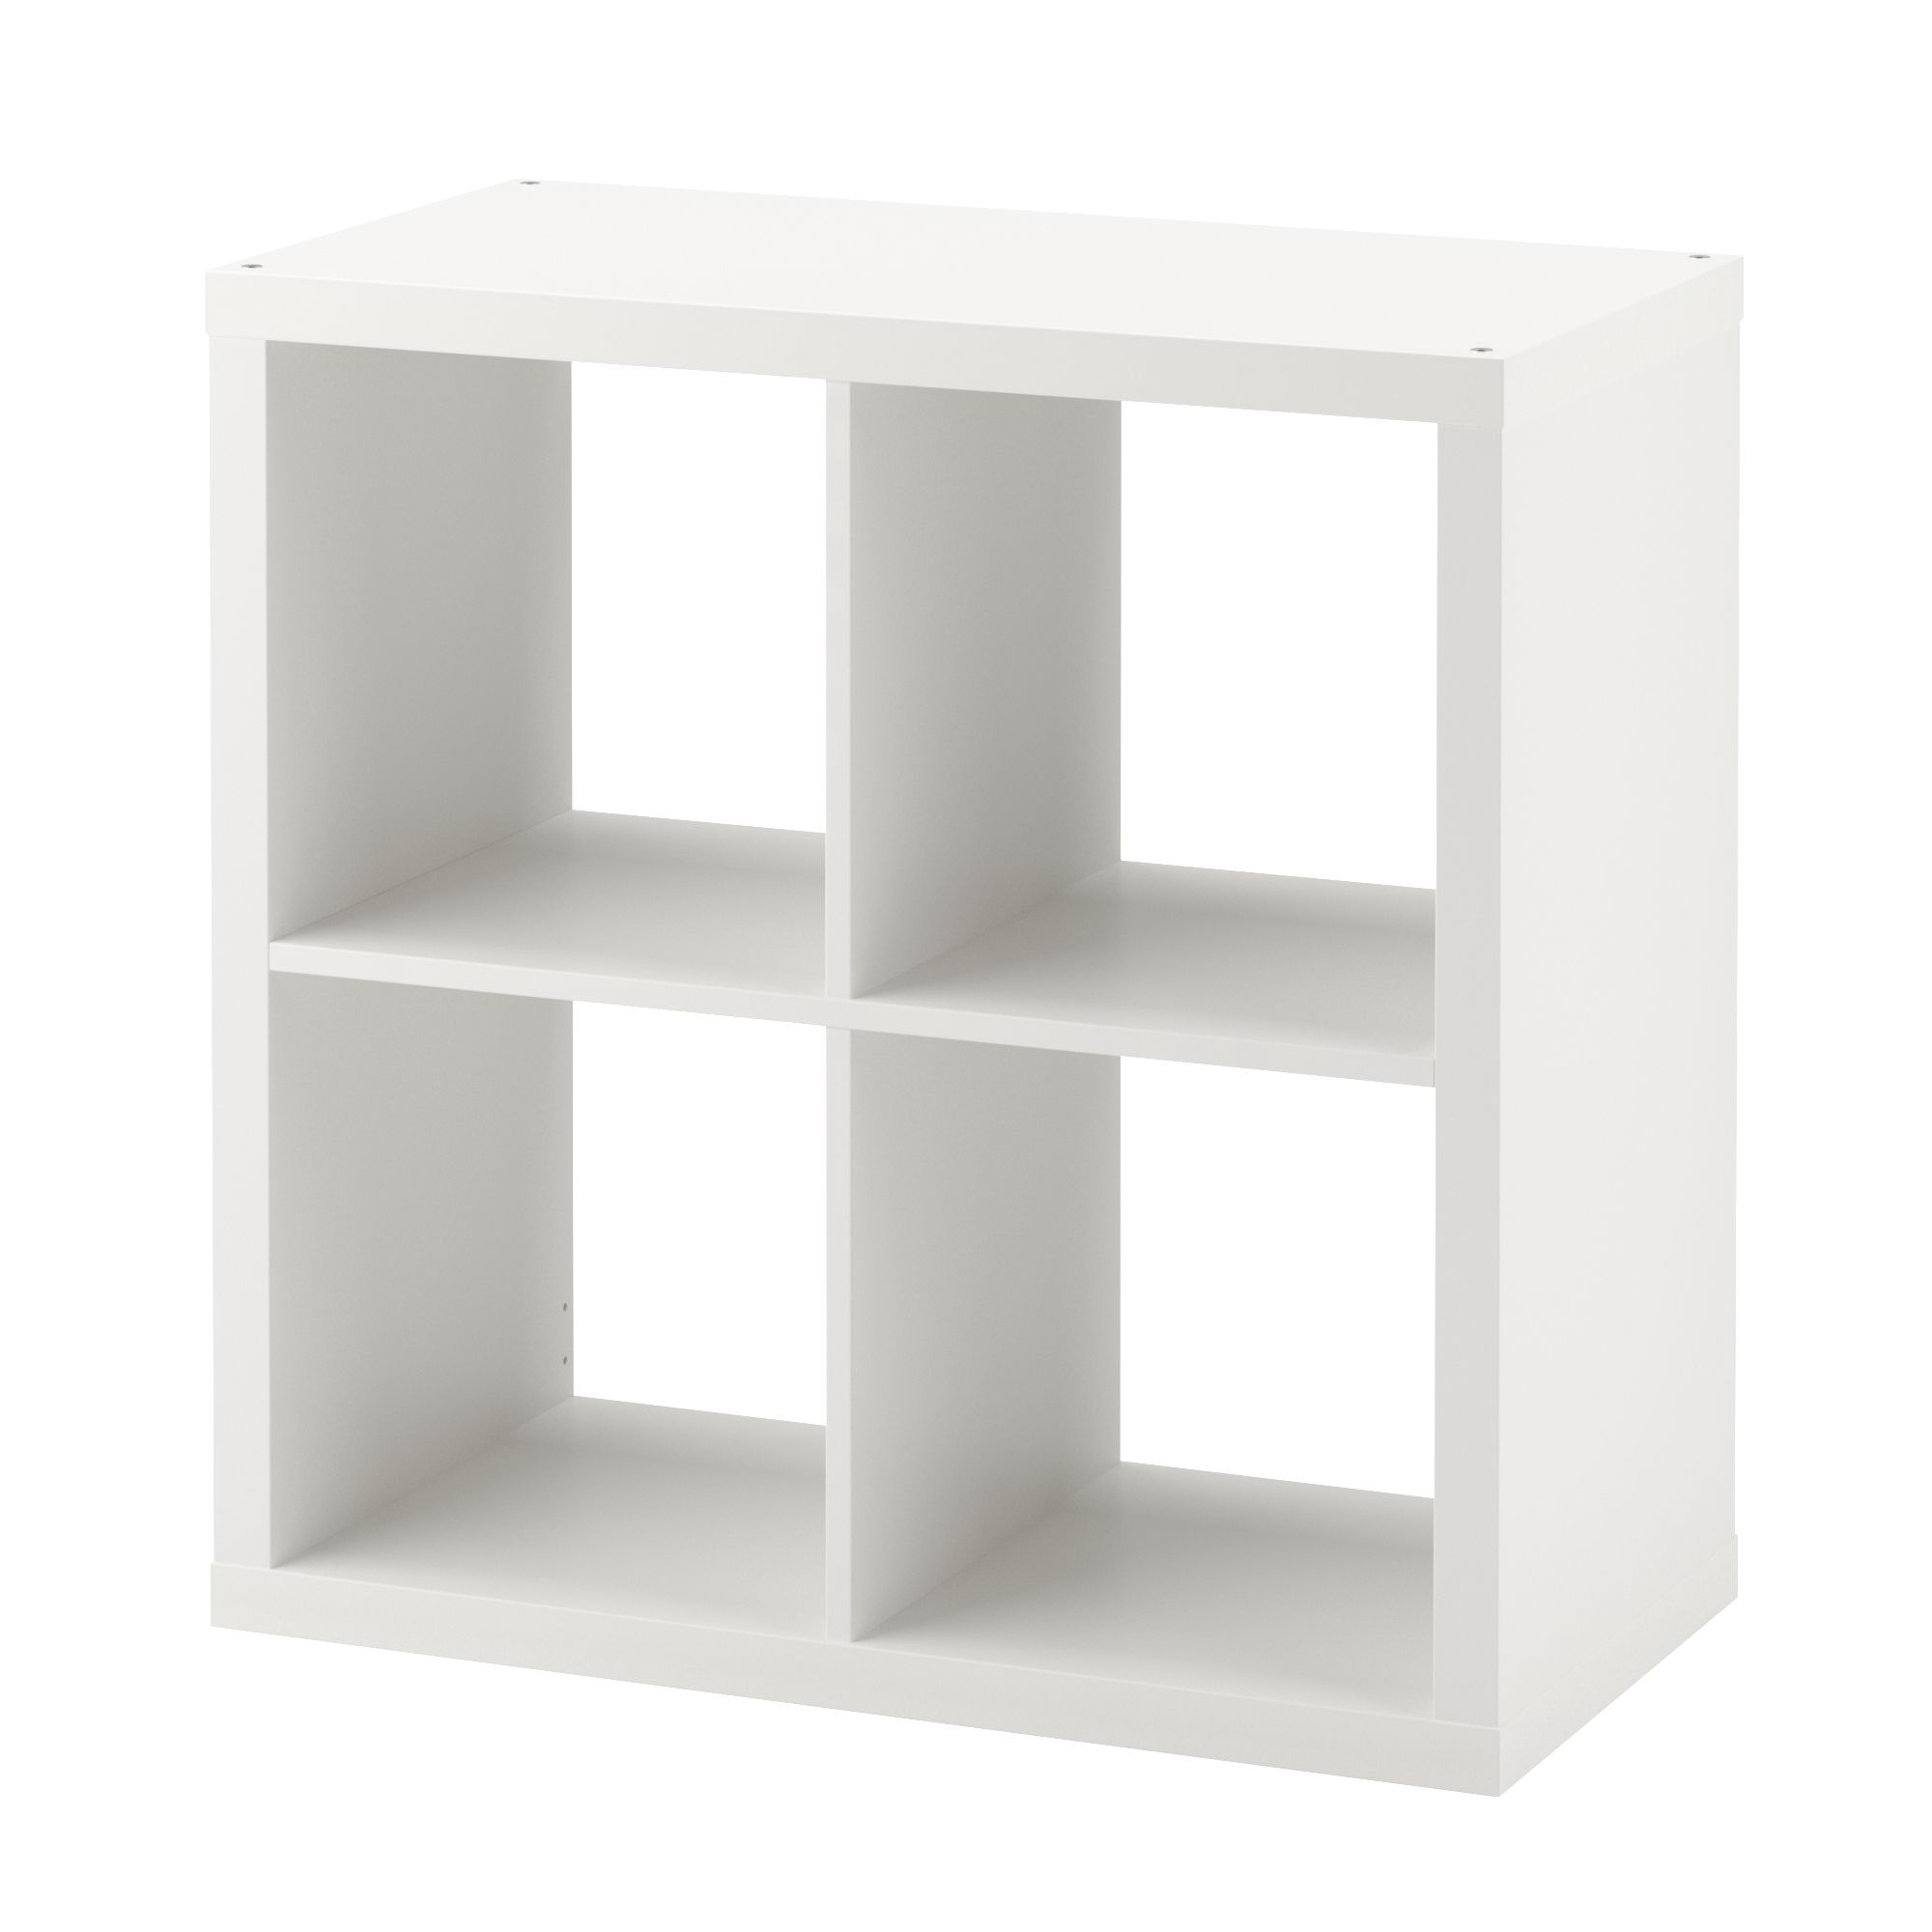 Kallax Shelf Unit White 30 3 8x30 3 8 Ikea Shelving Unit Kallax Shelving Unit Cube Bookcase